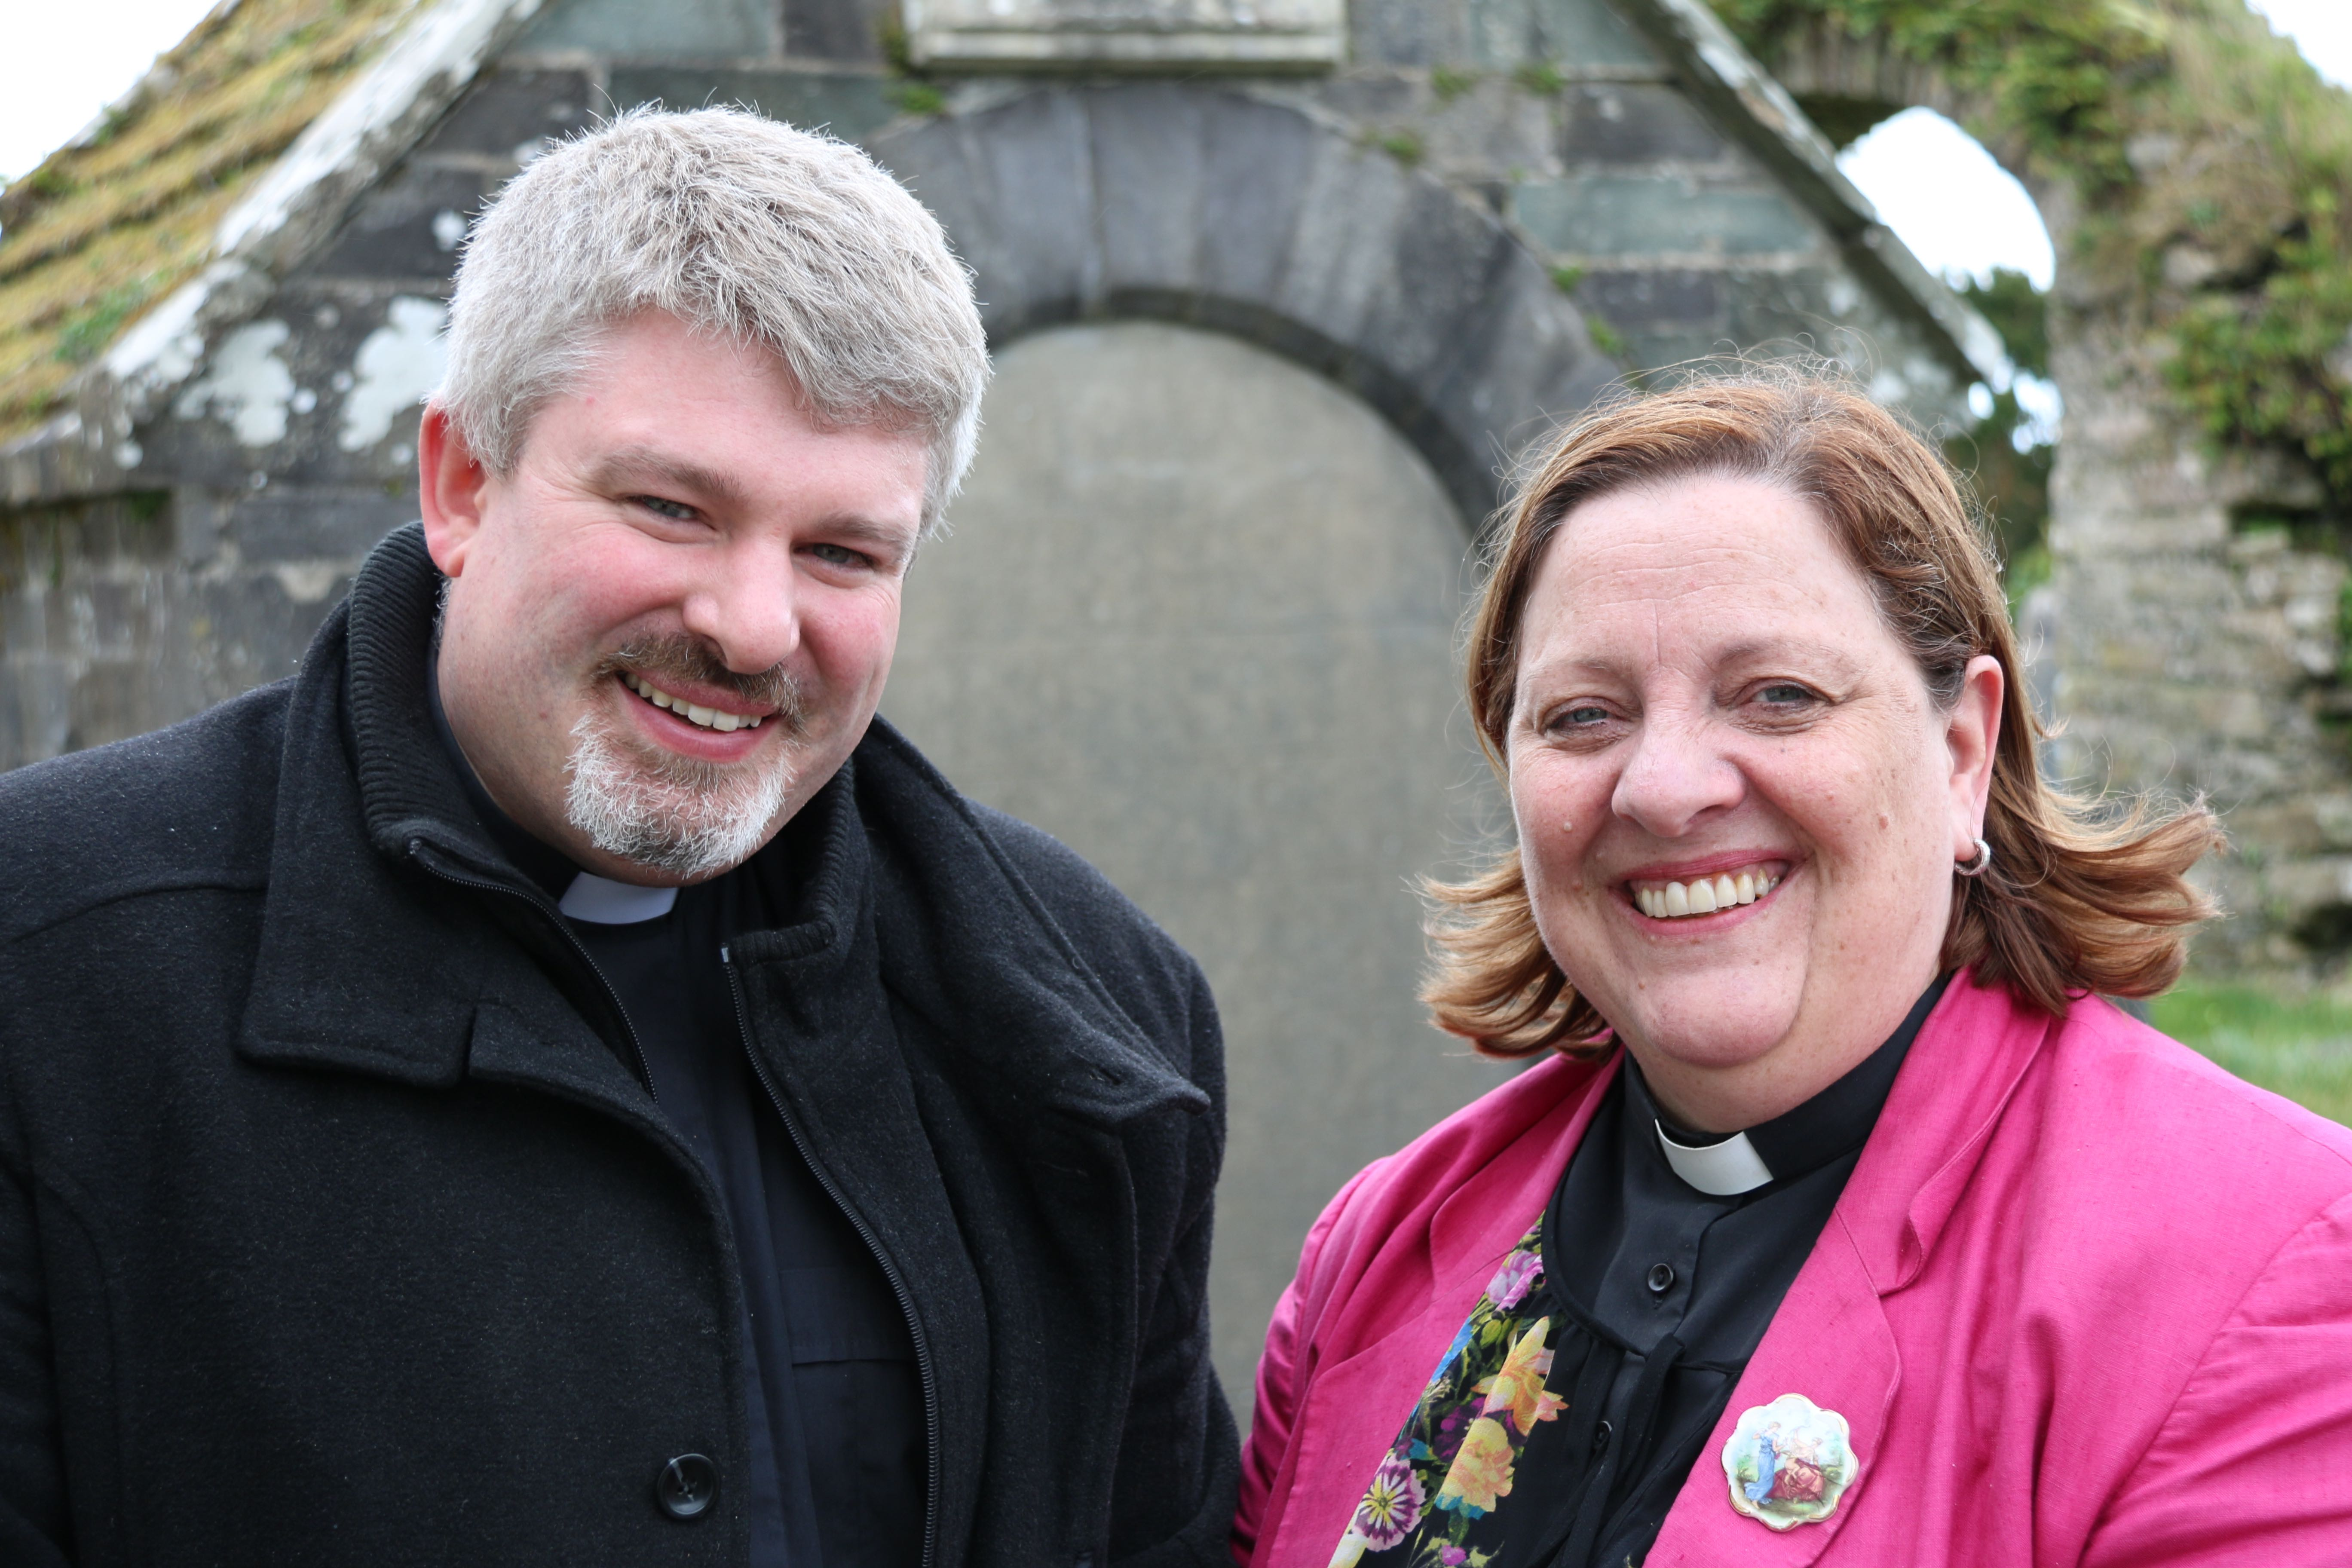 The Reverend John Ardis and the Reverend Elaine Murray, Domestic Chaplains to the Bishop